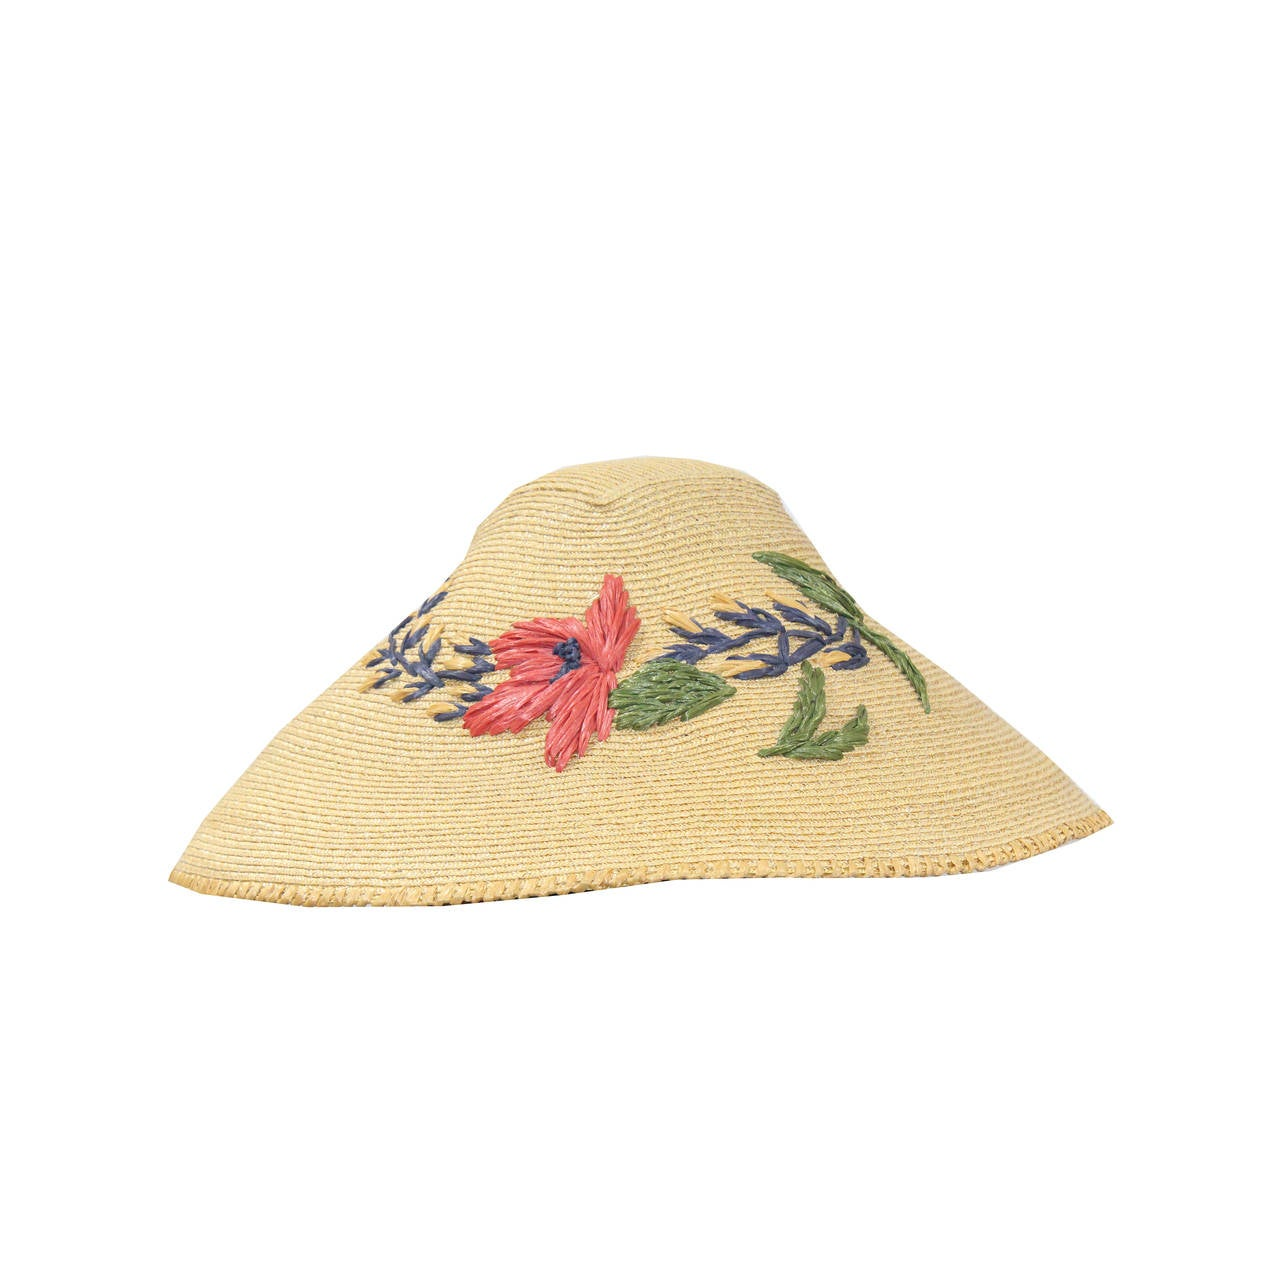 S grevi oriental style embroidered sun hat at stdibs